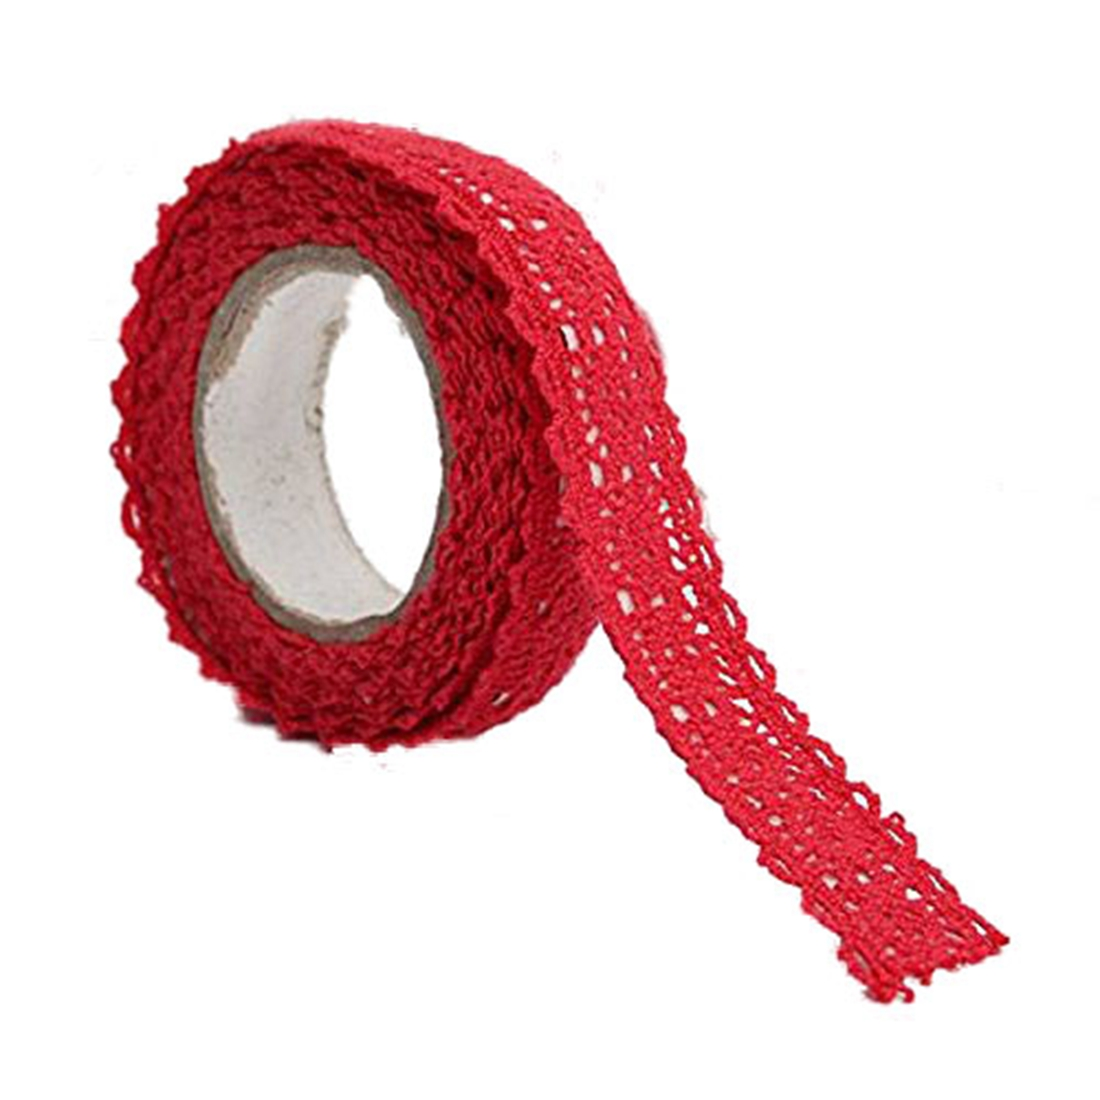 1x Decoration Band Christmas Ribbon Lace Wedding Gift on 1.8 * 170cm Red